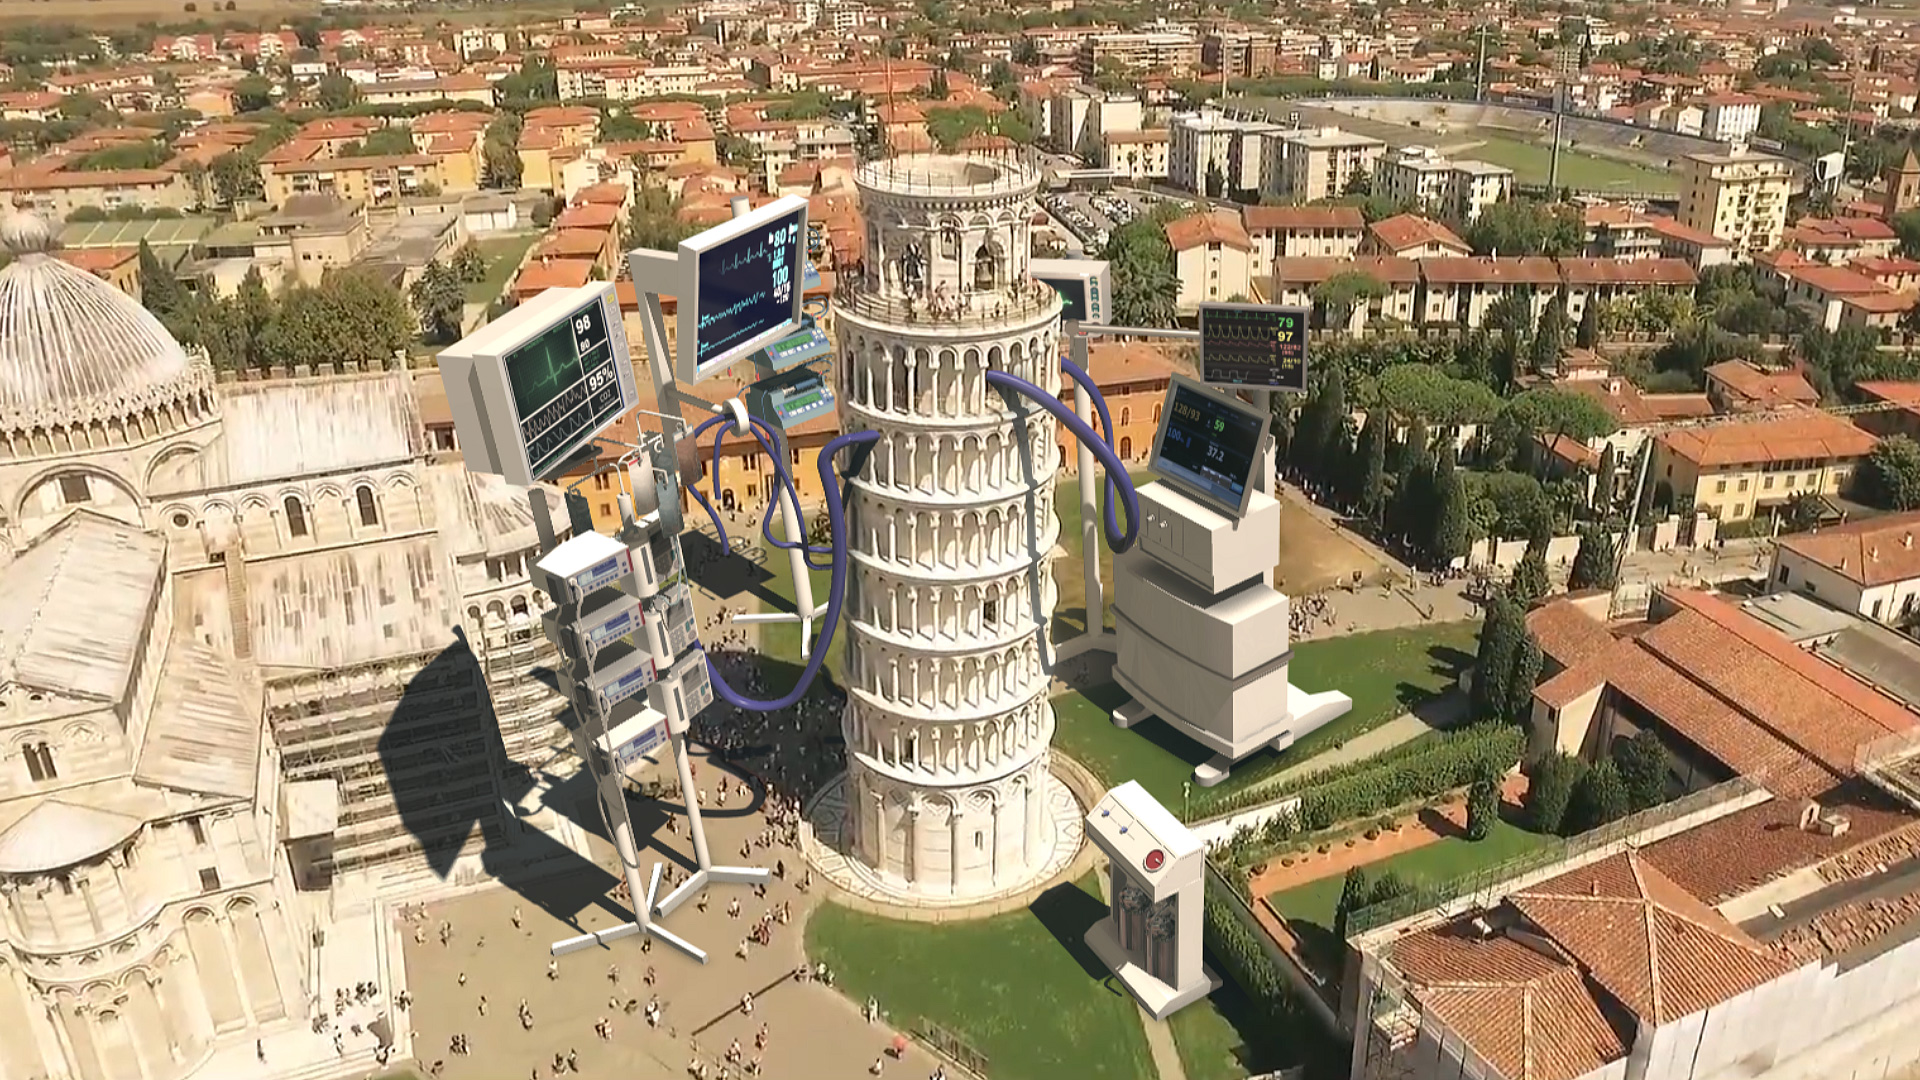 The Leaning Tower of Pisa visual artwork representing the critical state of Italy | VFX installation on COVID-19 | Hamid Ebrahimnia and Studio 3City | STIRworld